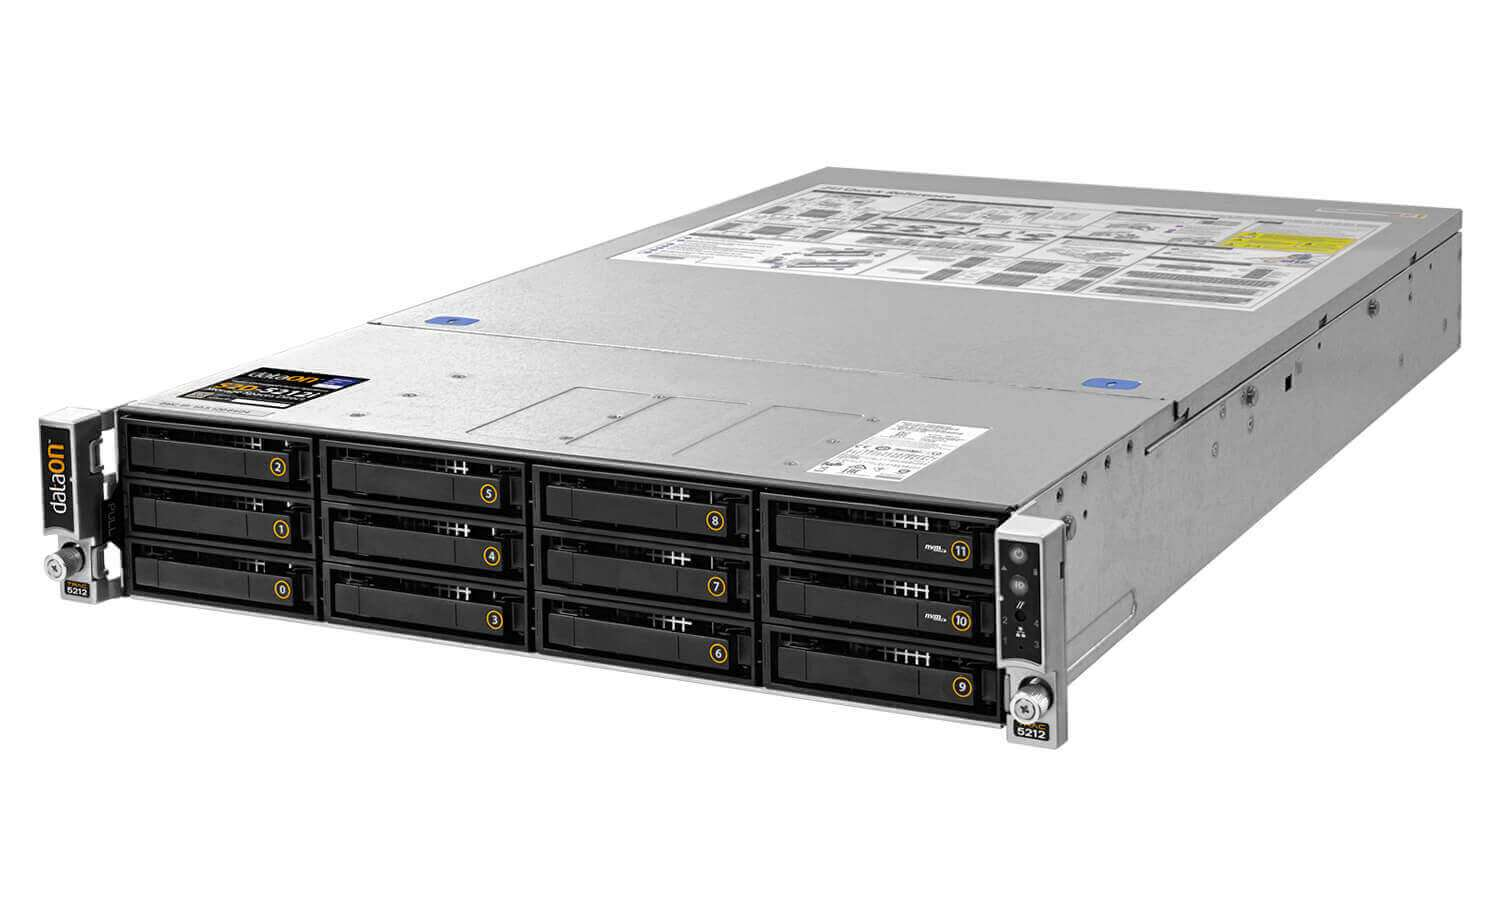 allsystems-producten-hyperconverged-systems-DataON_S2D-5212i_Front_Side_View